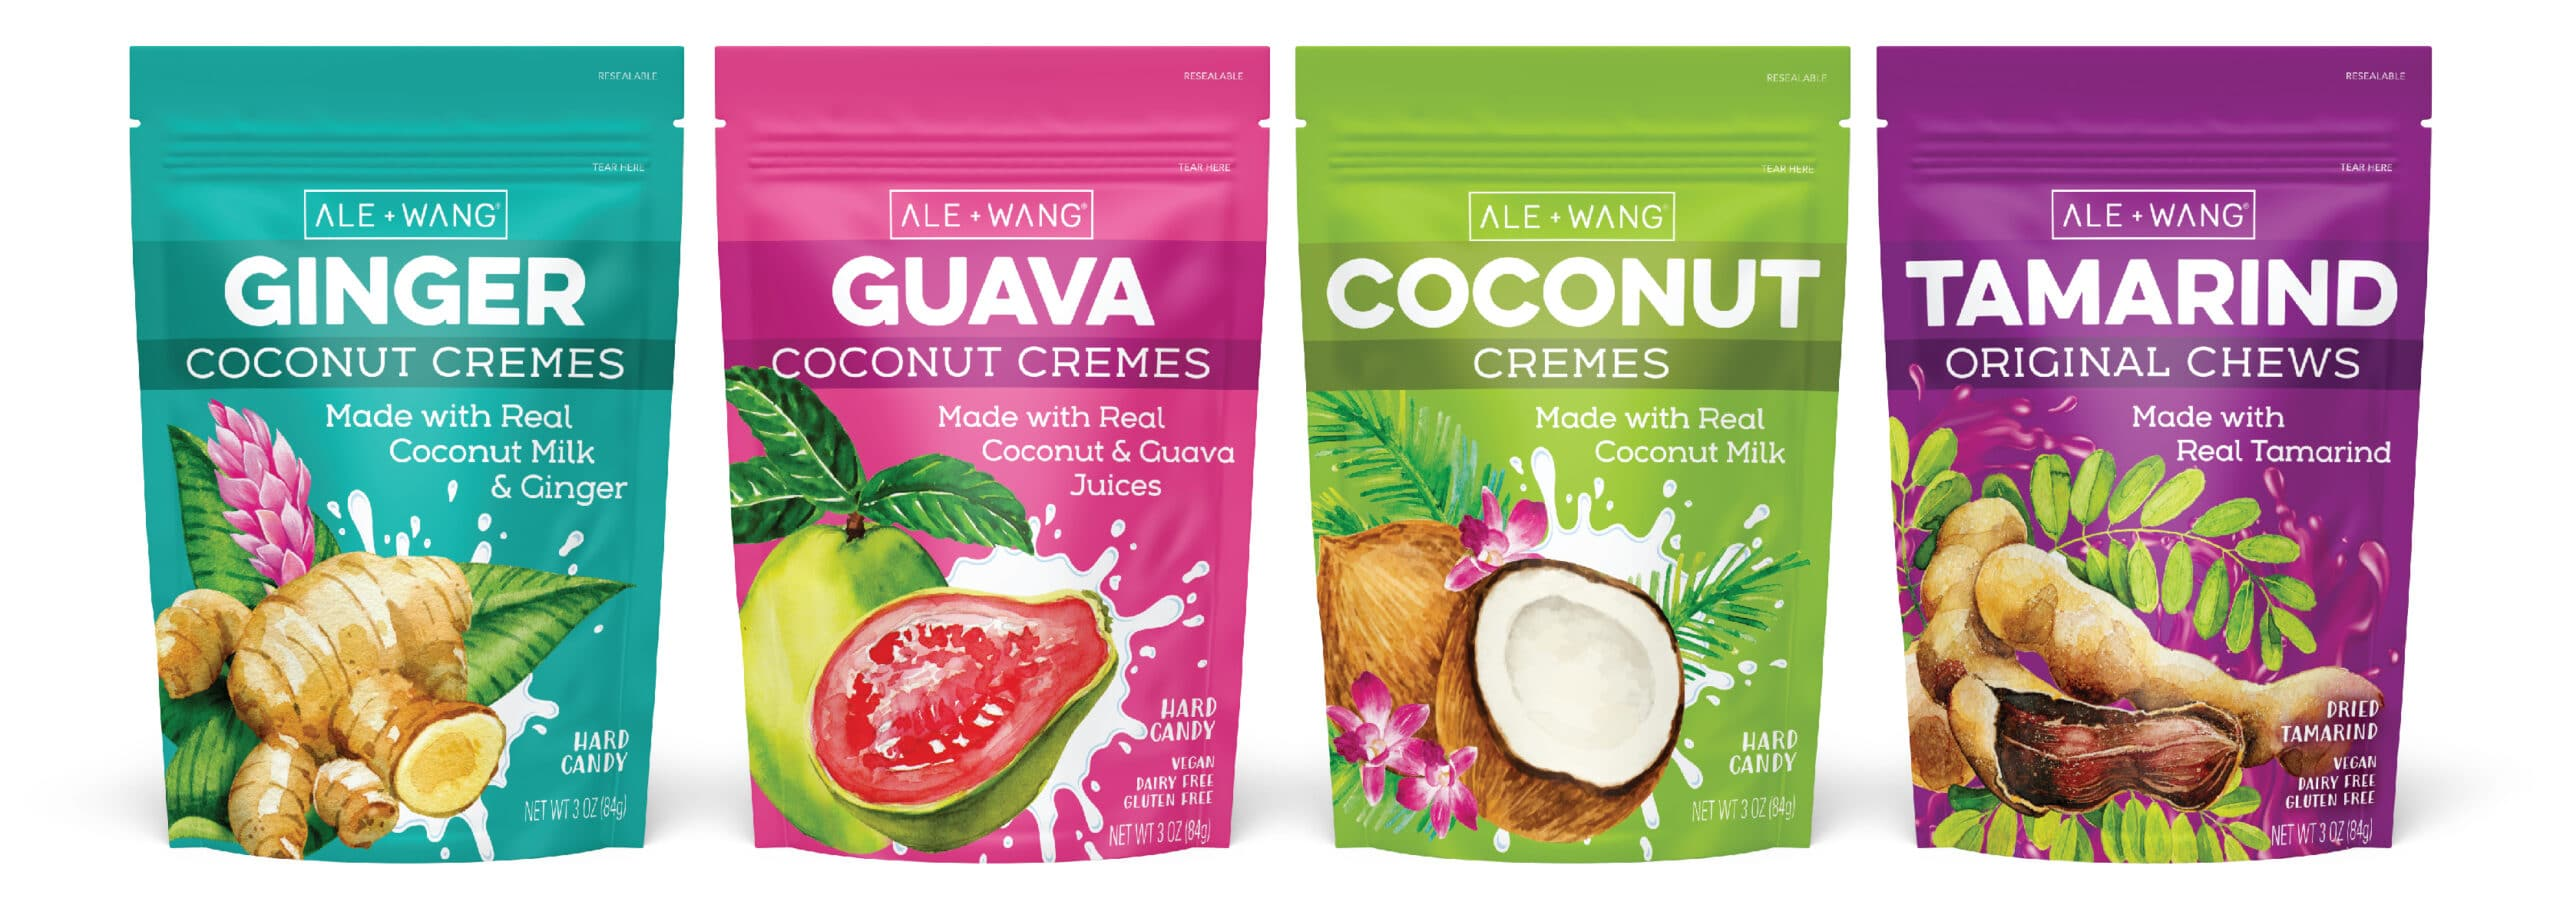 Coconut Creme Candy Pouch Packaging Design